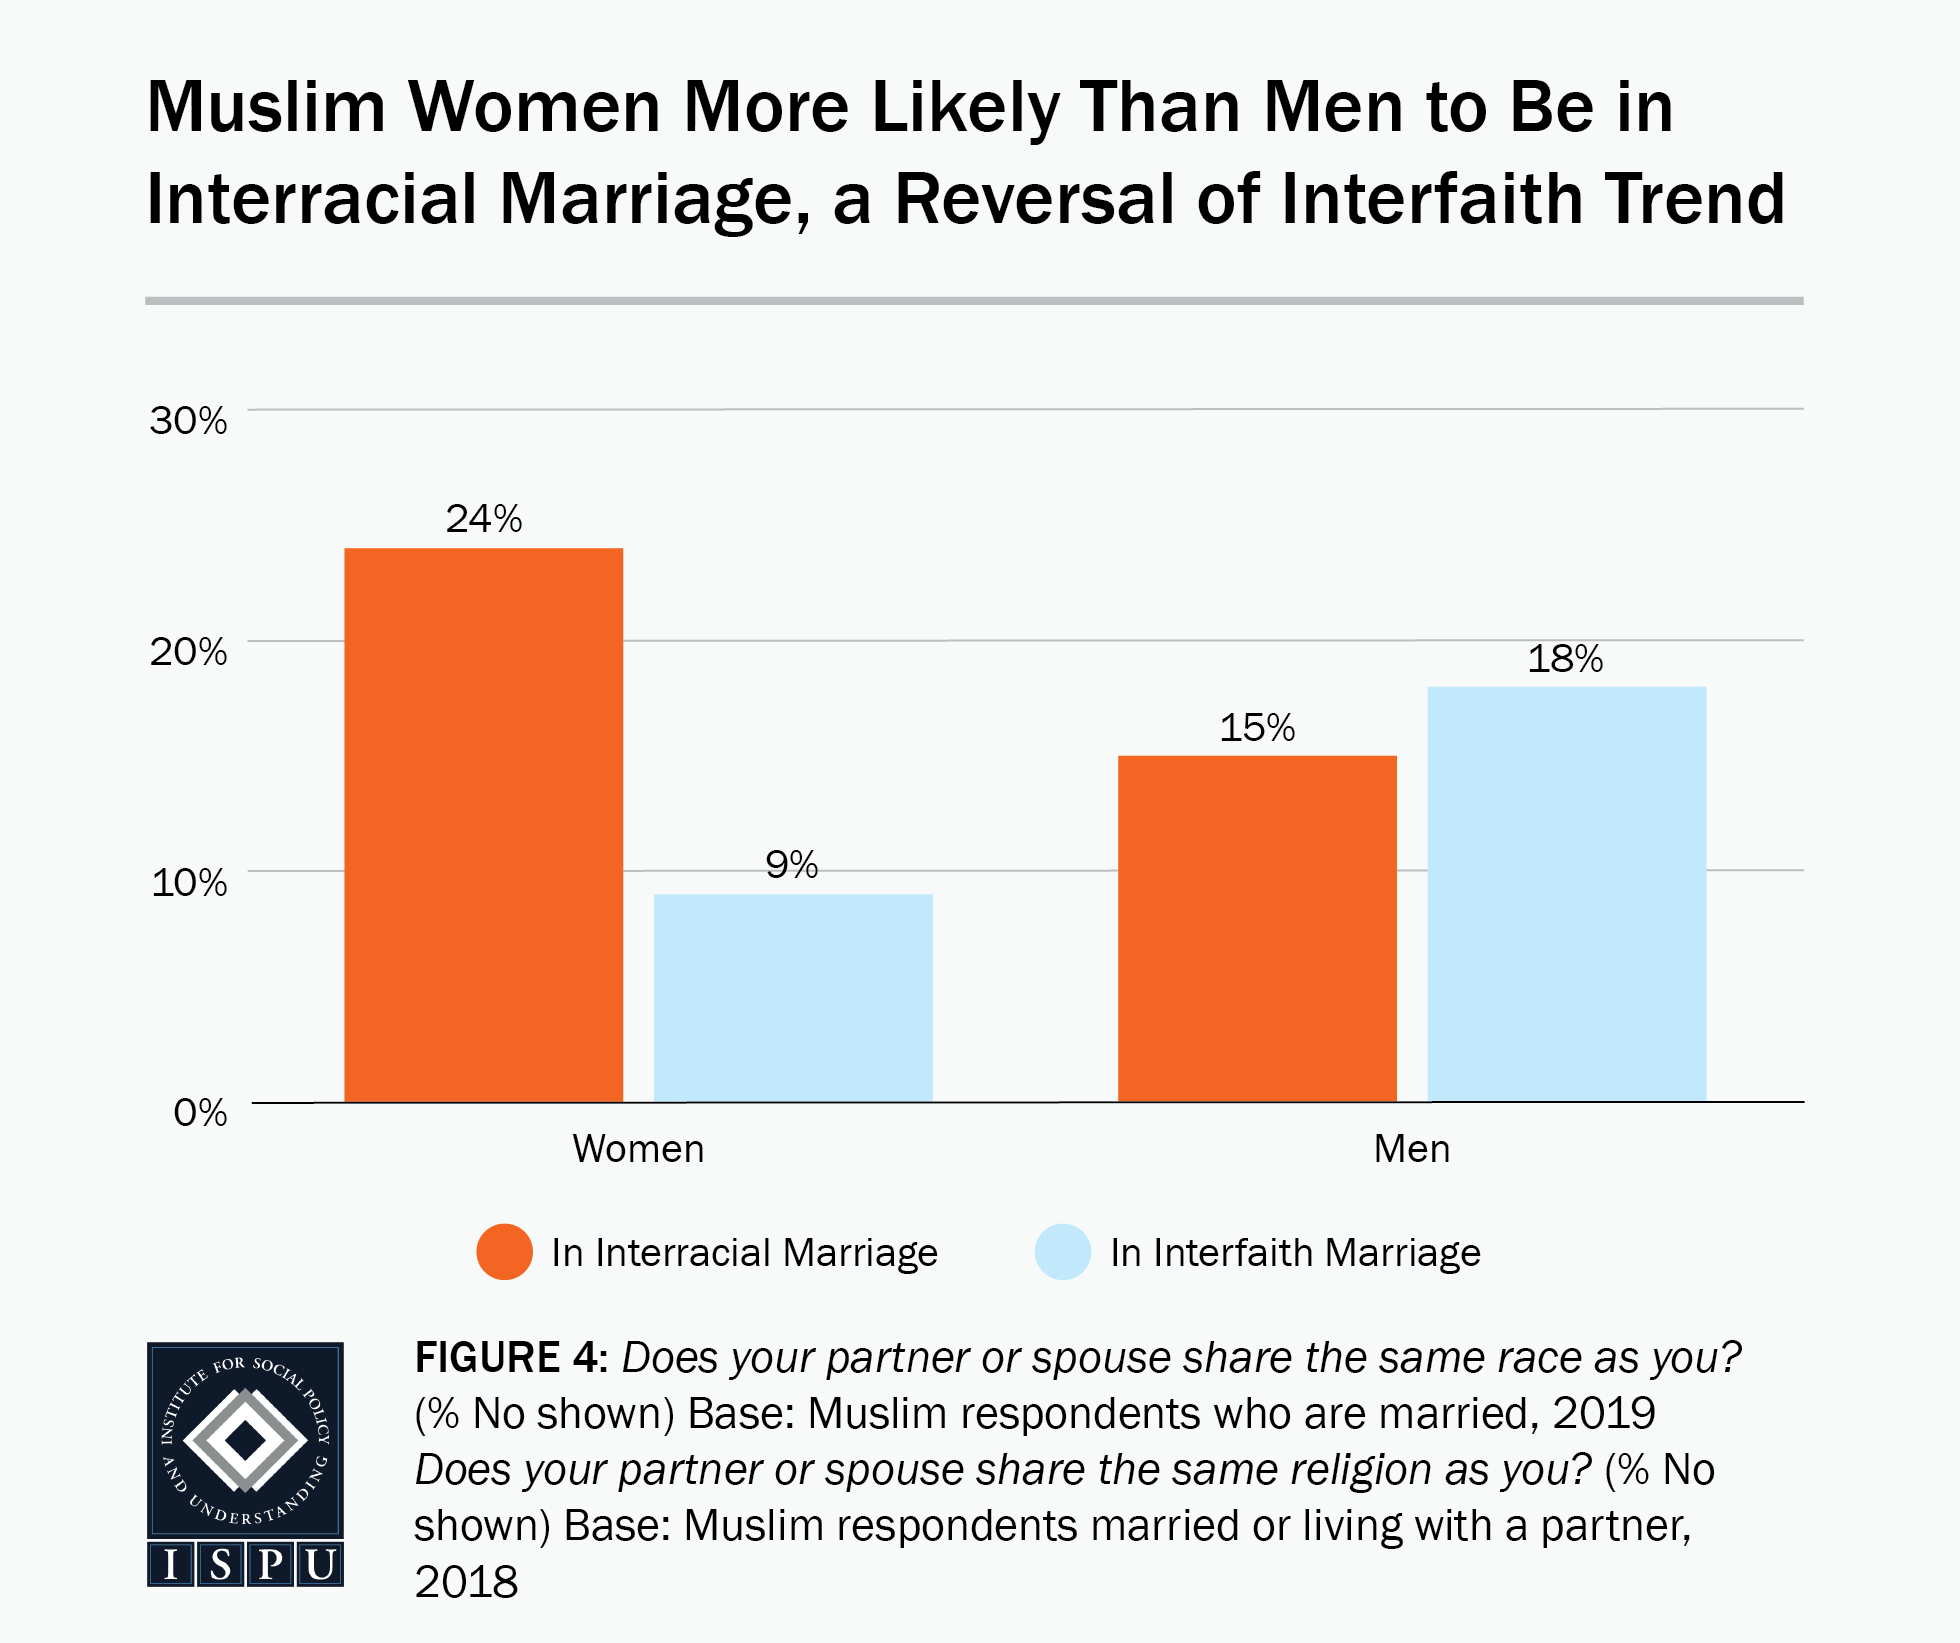 Figure 4: A bar graph showing that Muslim women (24%) are more likely than Muslim men (15%) to be in an interracial marriage, a reversal of interfaith trend